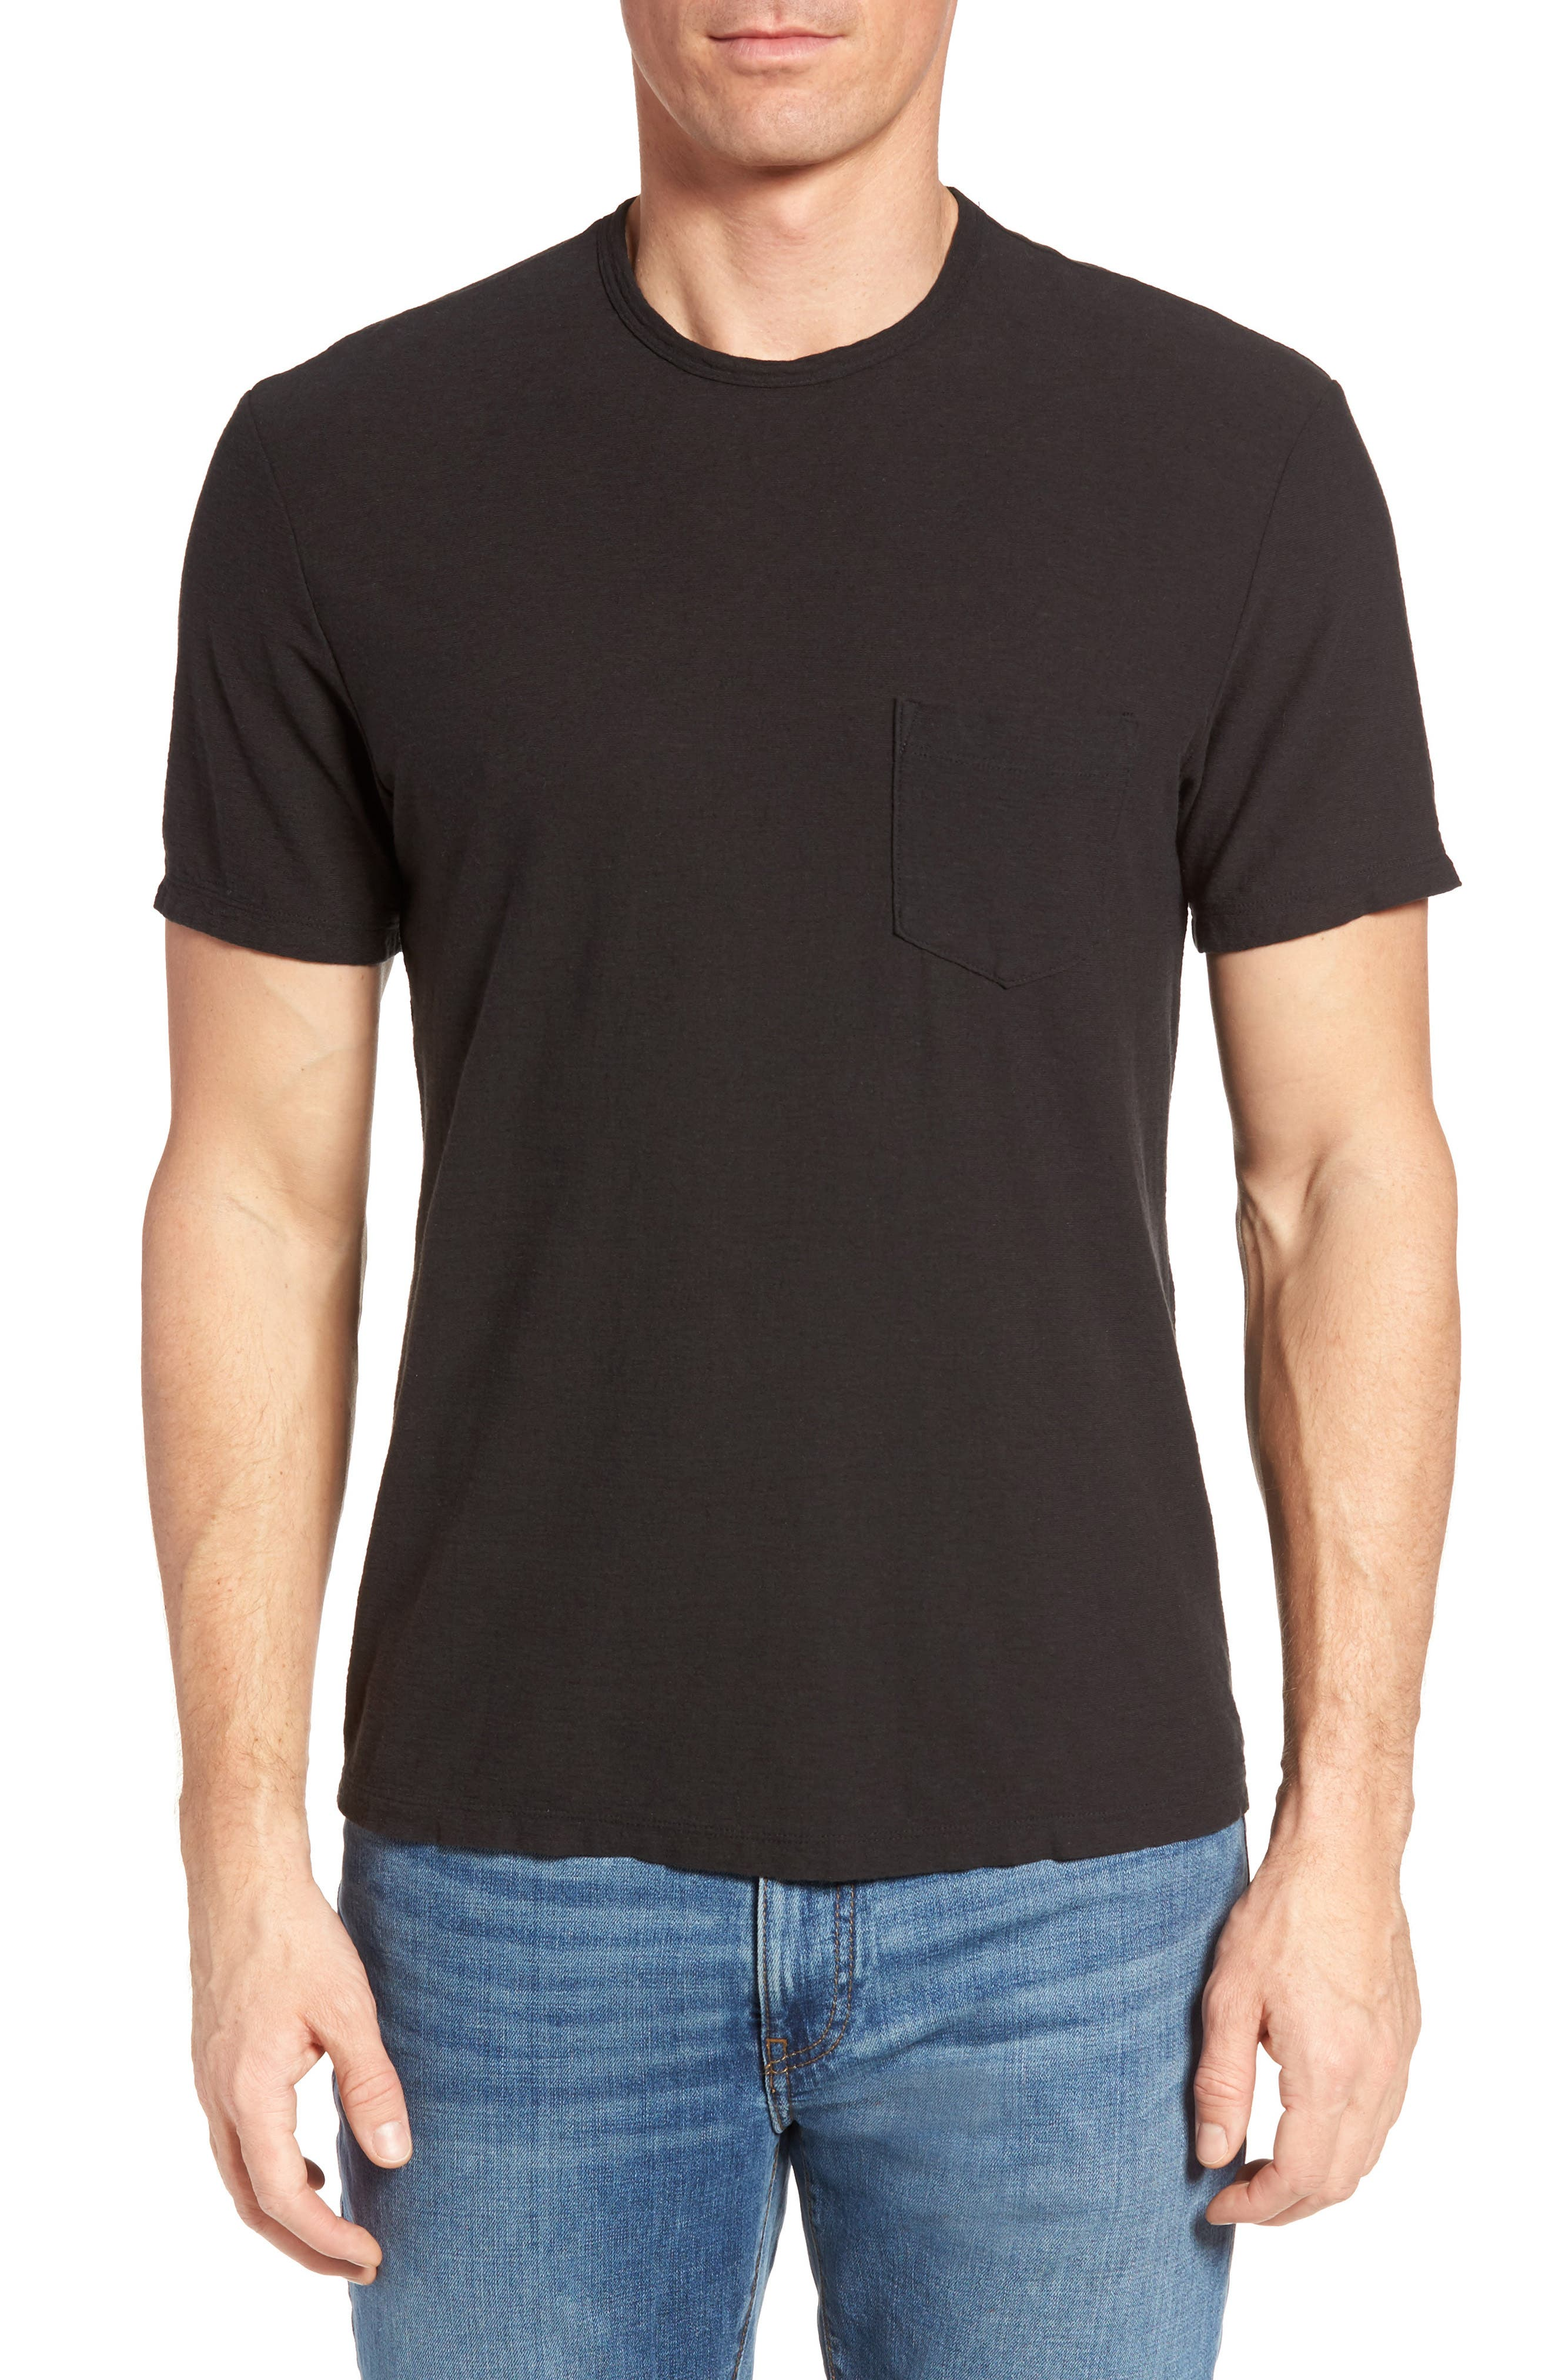 James Perse Back Graphic T-Shirt